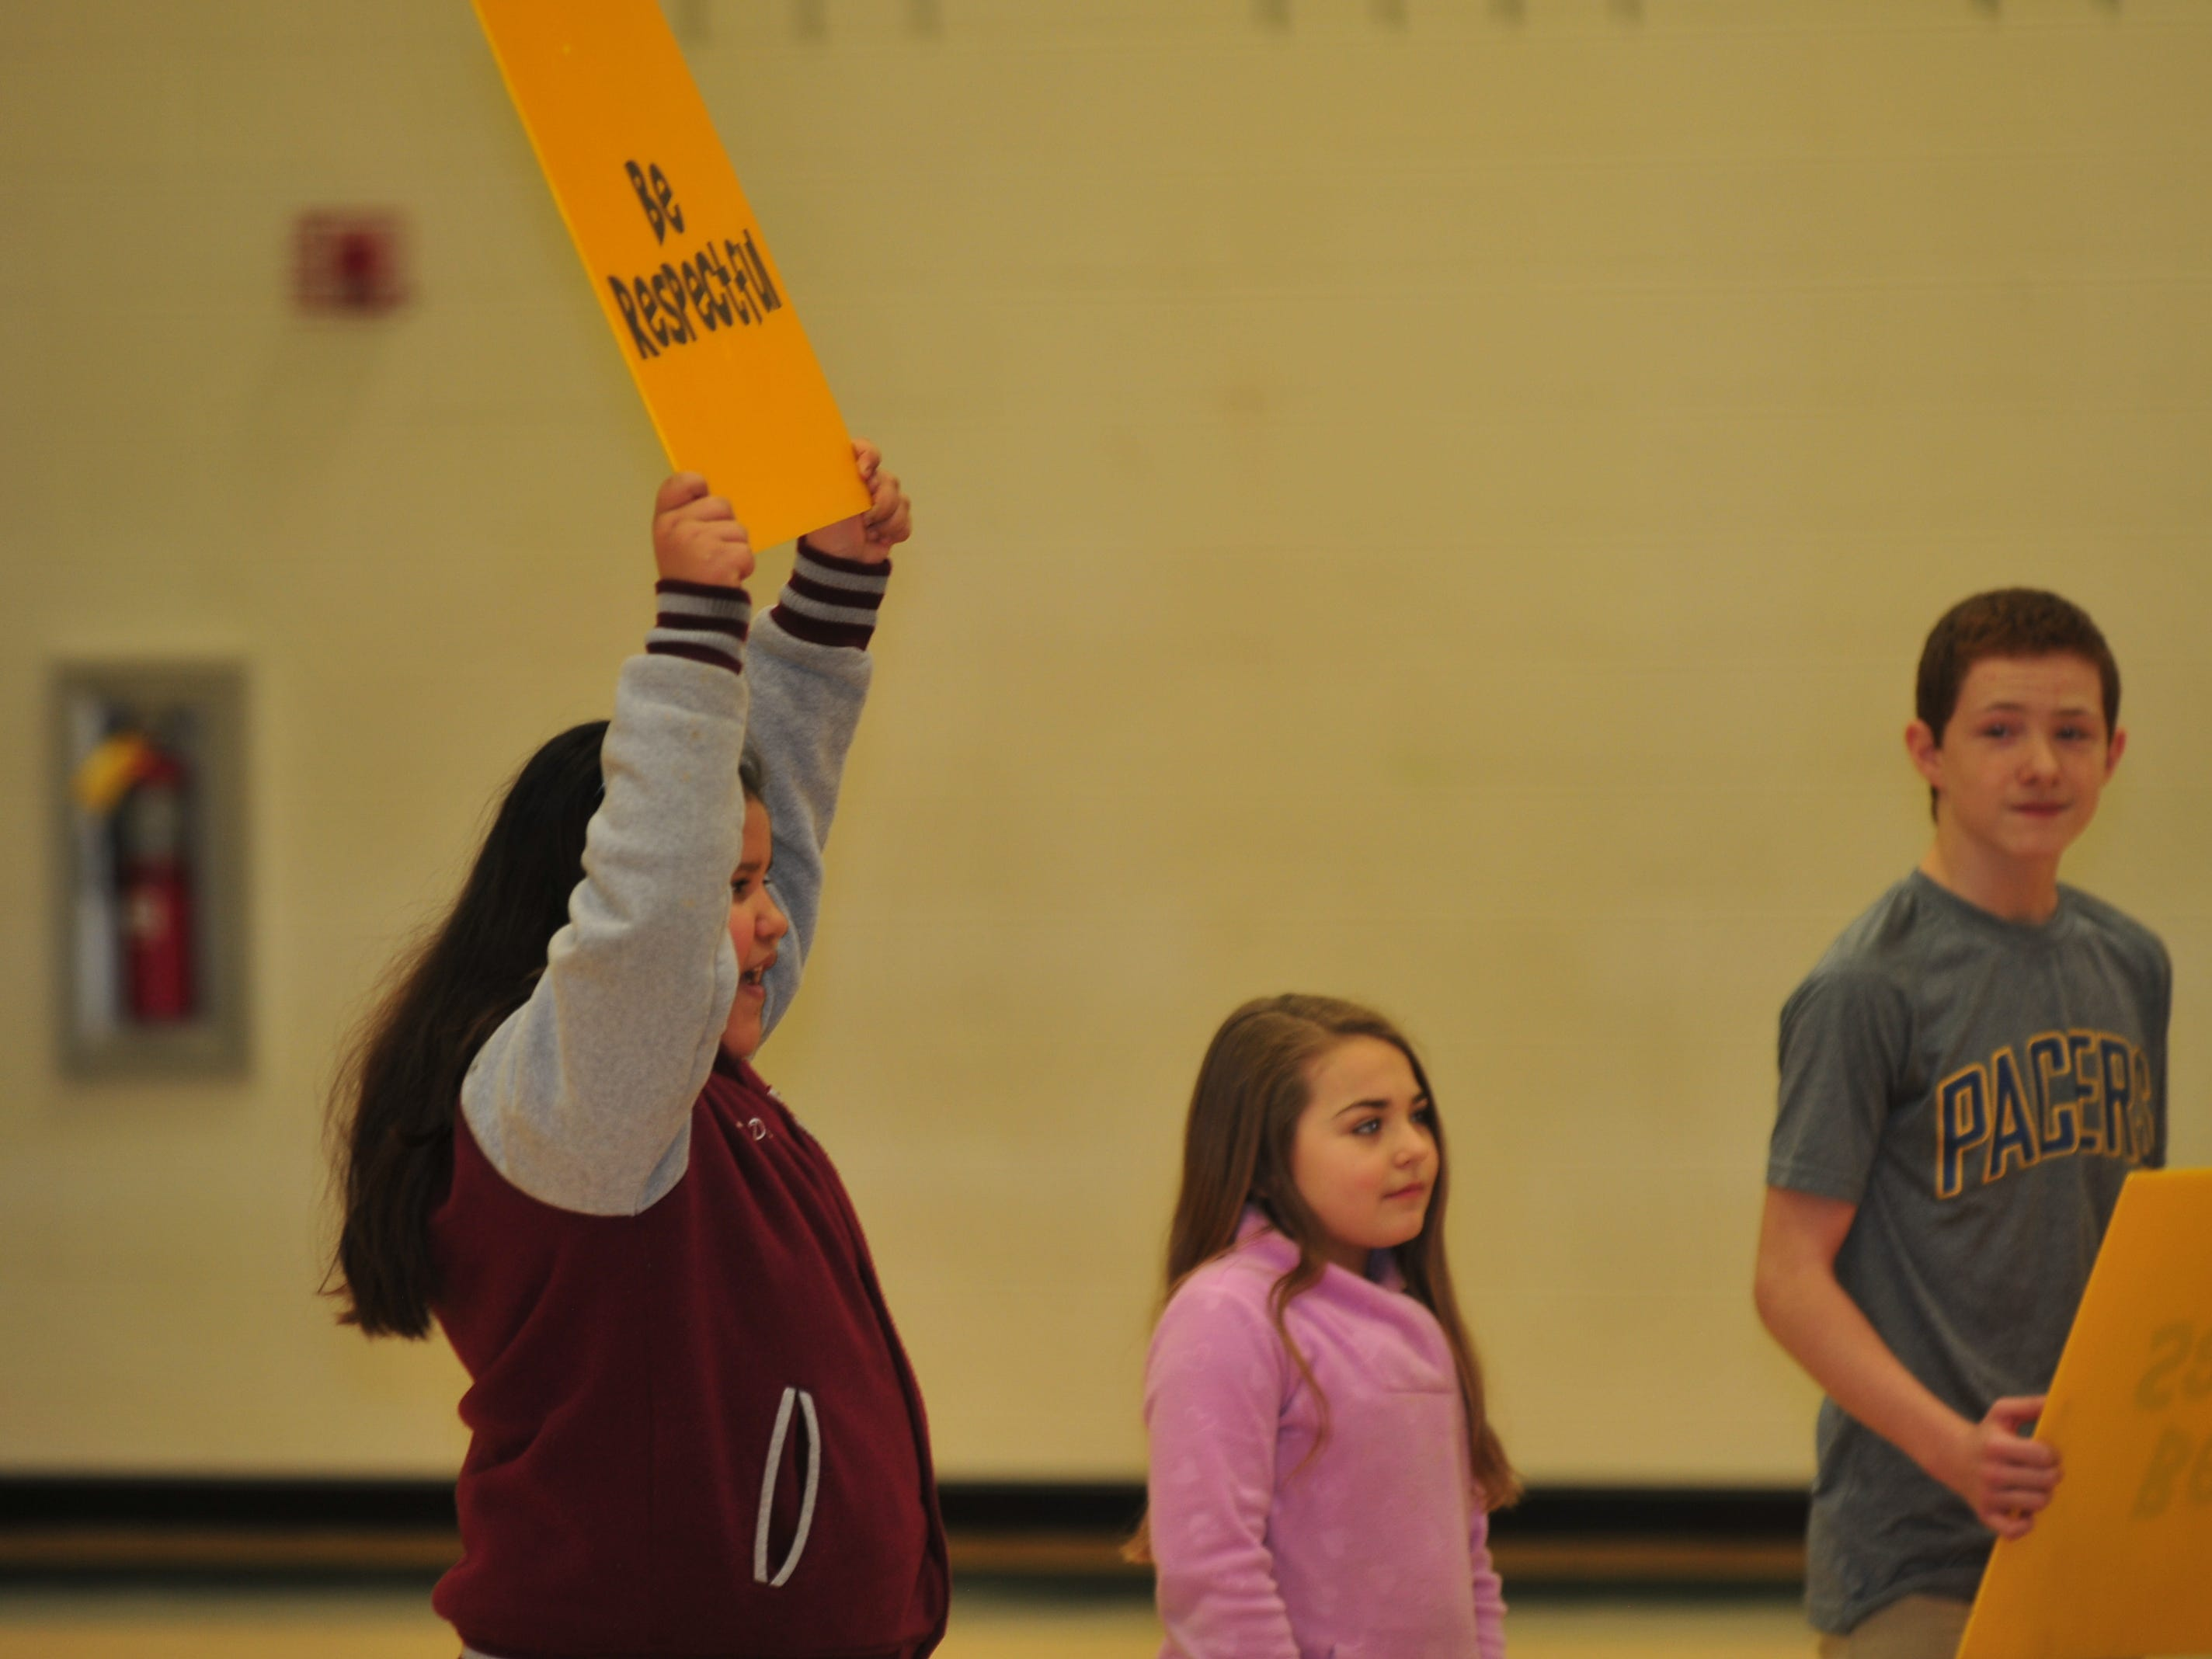 A volunteer holds up a sign urging students to be respectful during Boomer's program at Dennis Intermediate School.